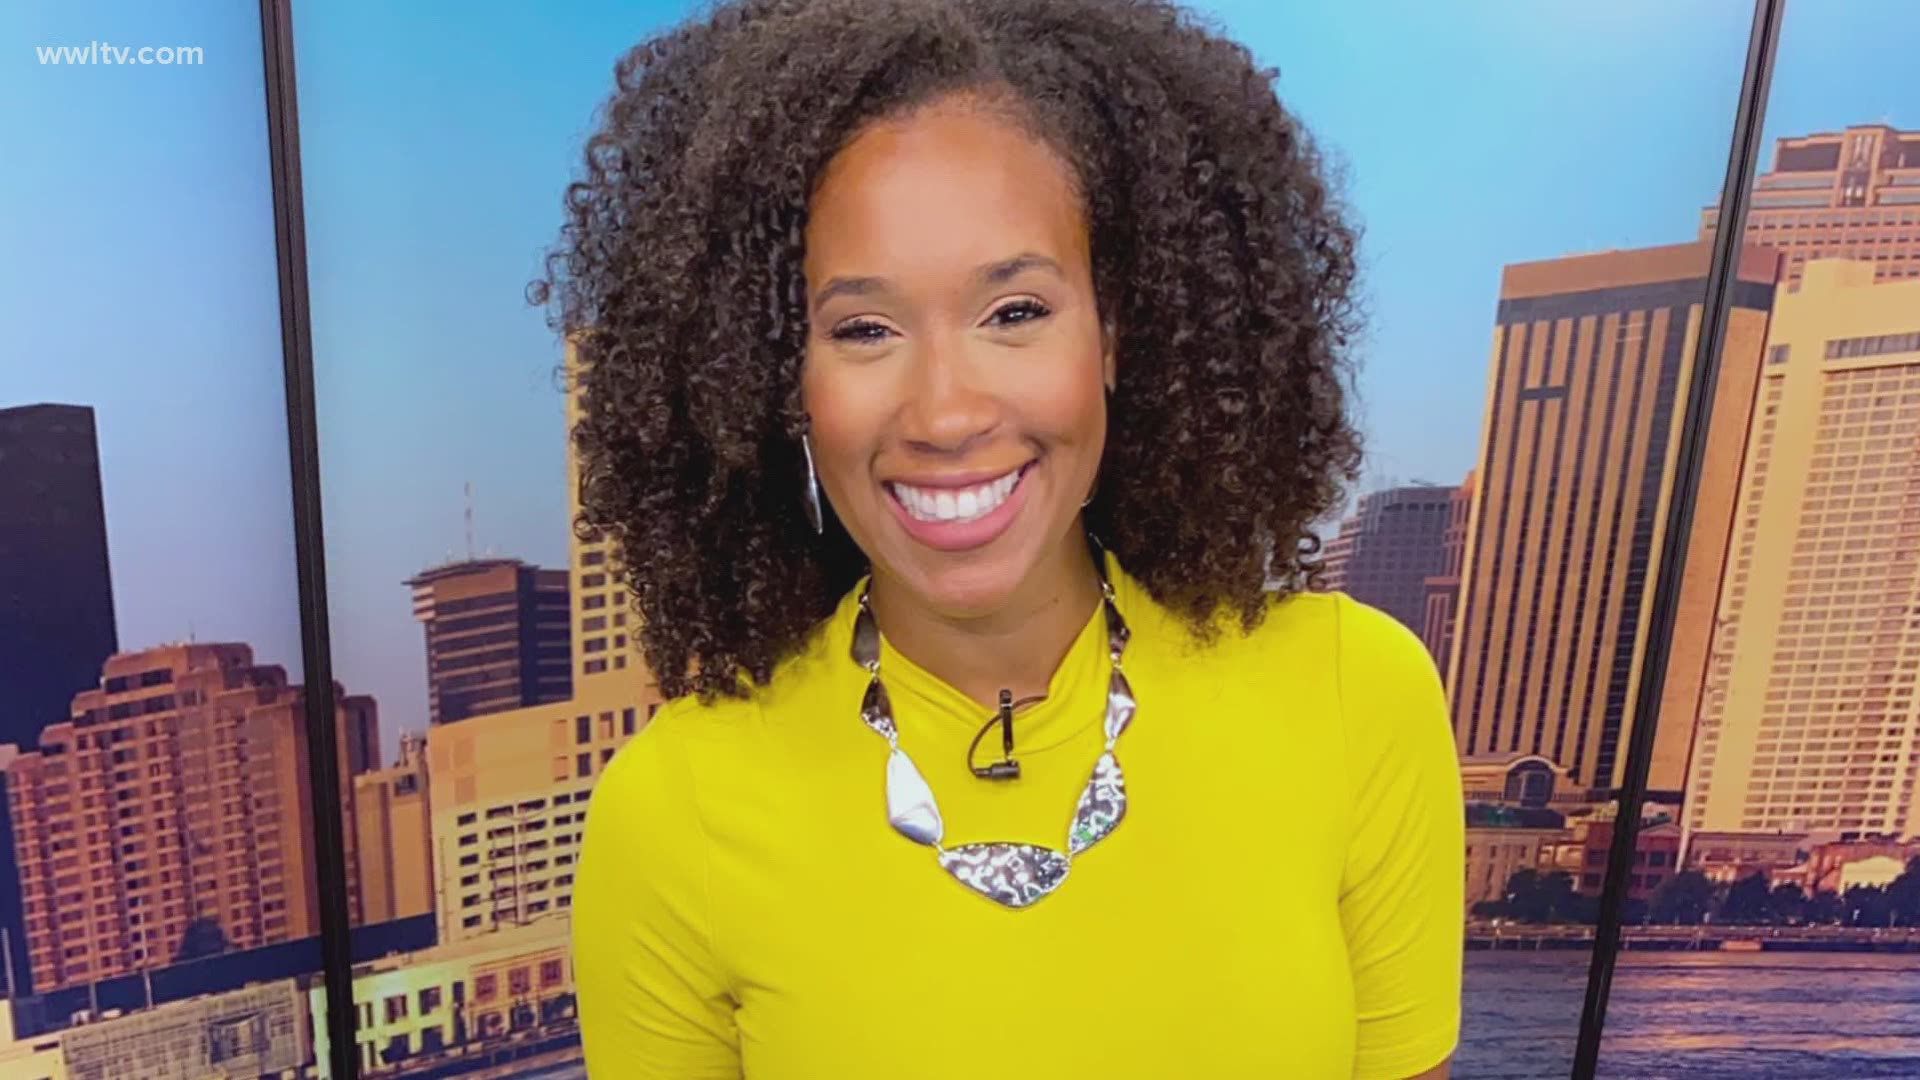 Wwl Tv S Sheba Turk Named Uno Young Alumna Of The Year Wwltv Com